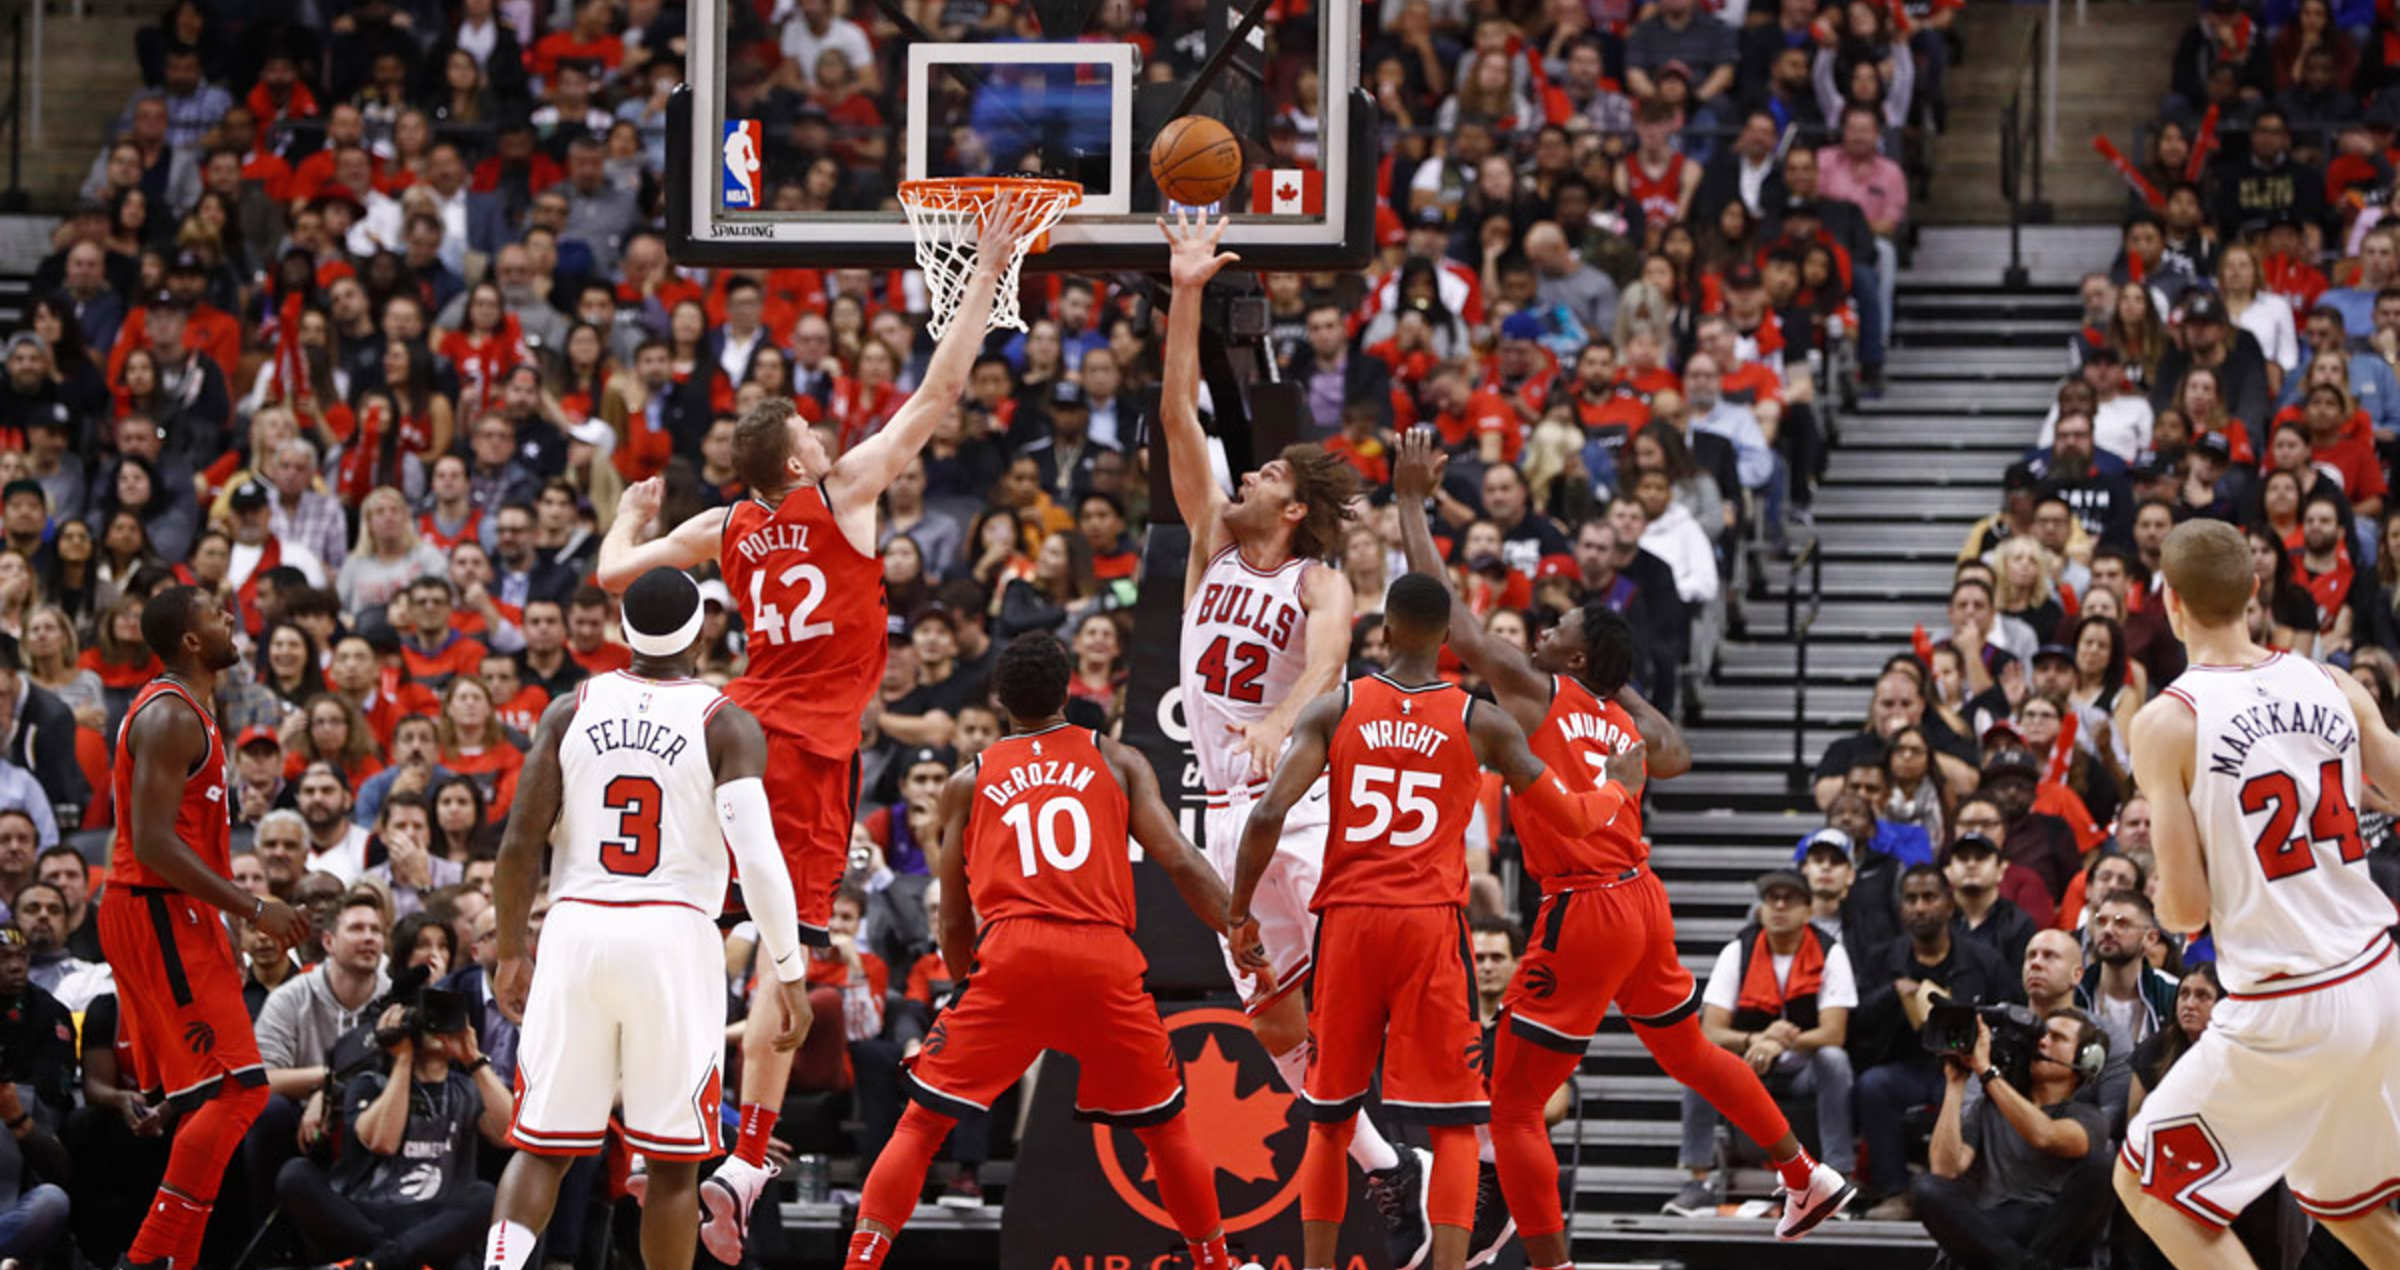 Robin Lopez #42 of the Chicago Bulls shoots the ball during the game against the Toronto Raptors on October 19, 2017 at the Air Canada Centre in Toronto, Ontario, Canada.